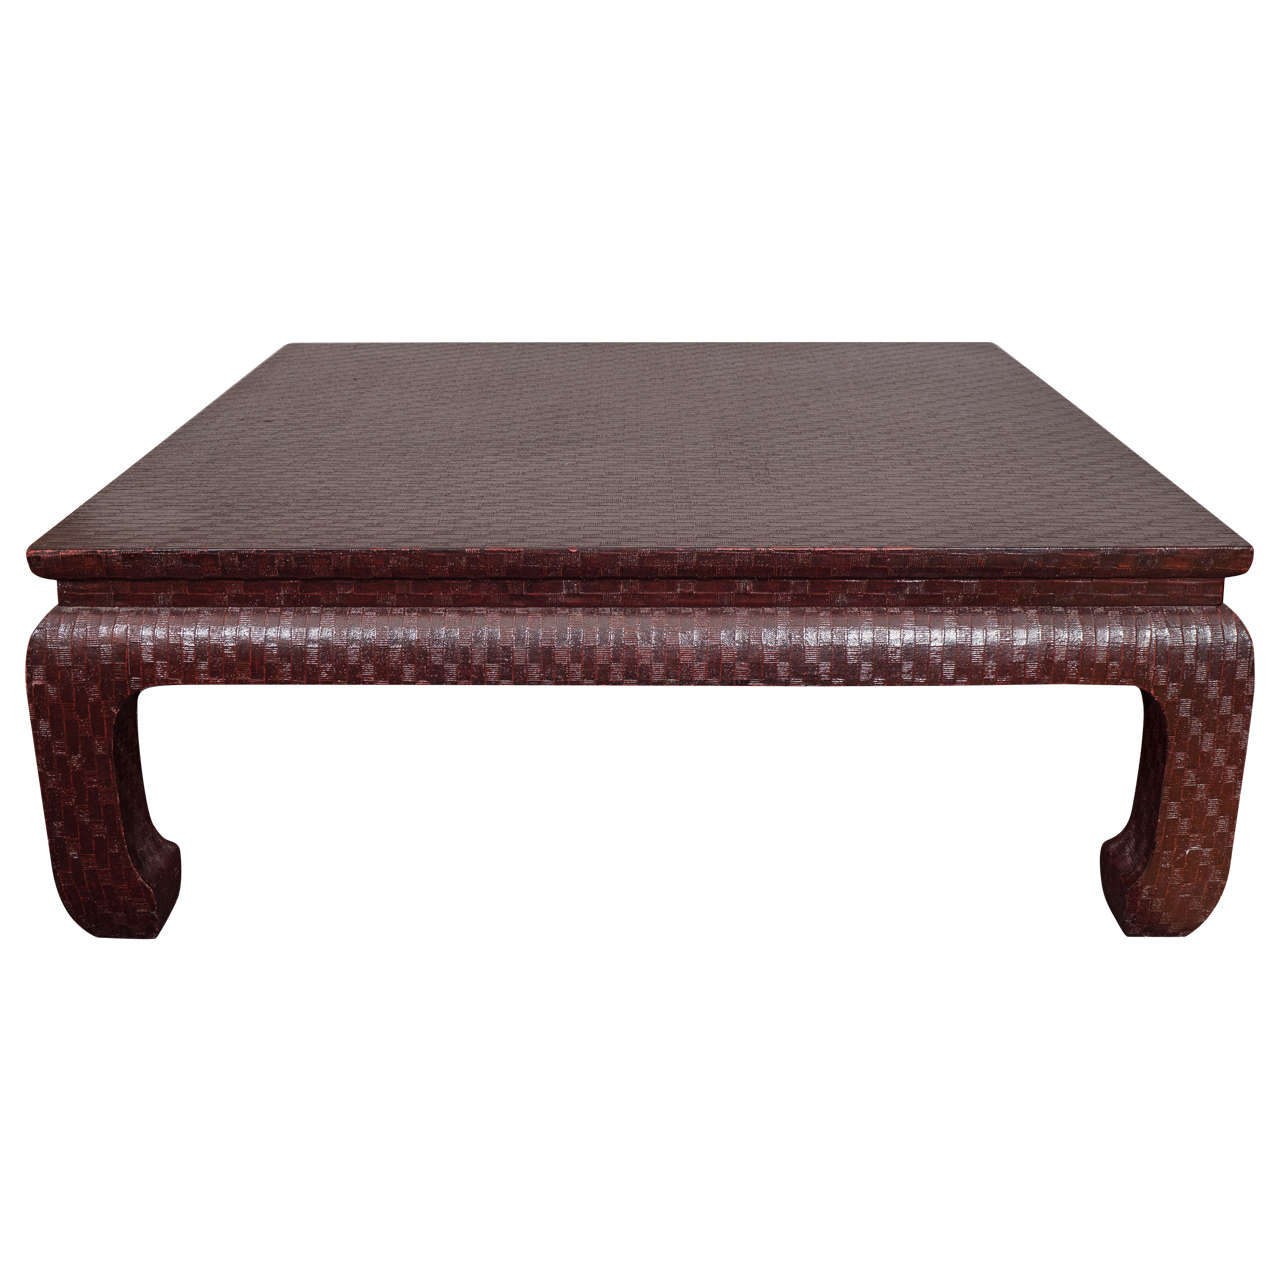 Karl Springer Style Burgundy Grasscloth Coffee Table By Baker At 1stdibs